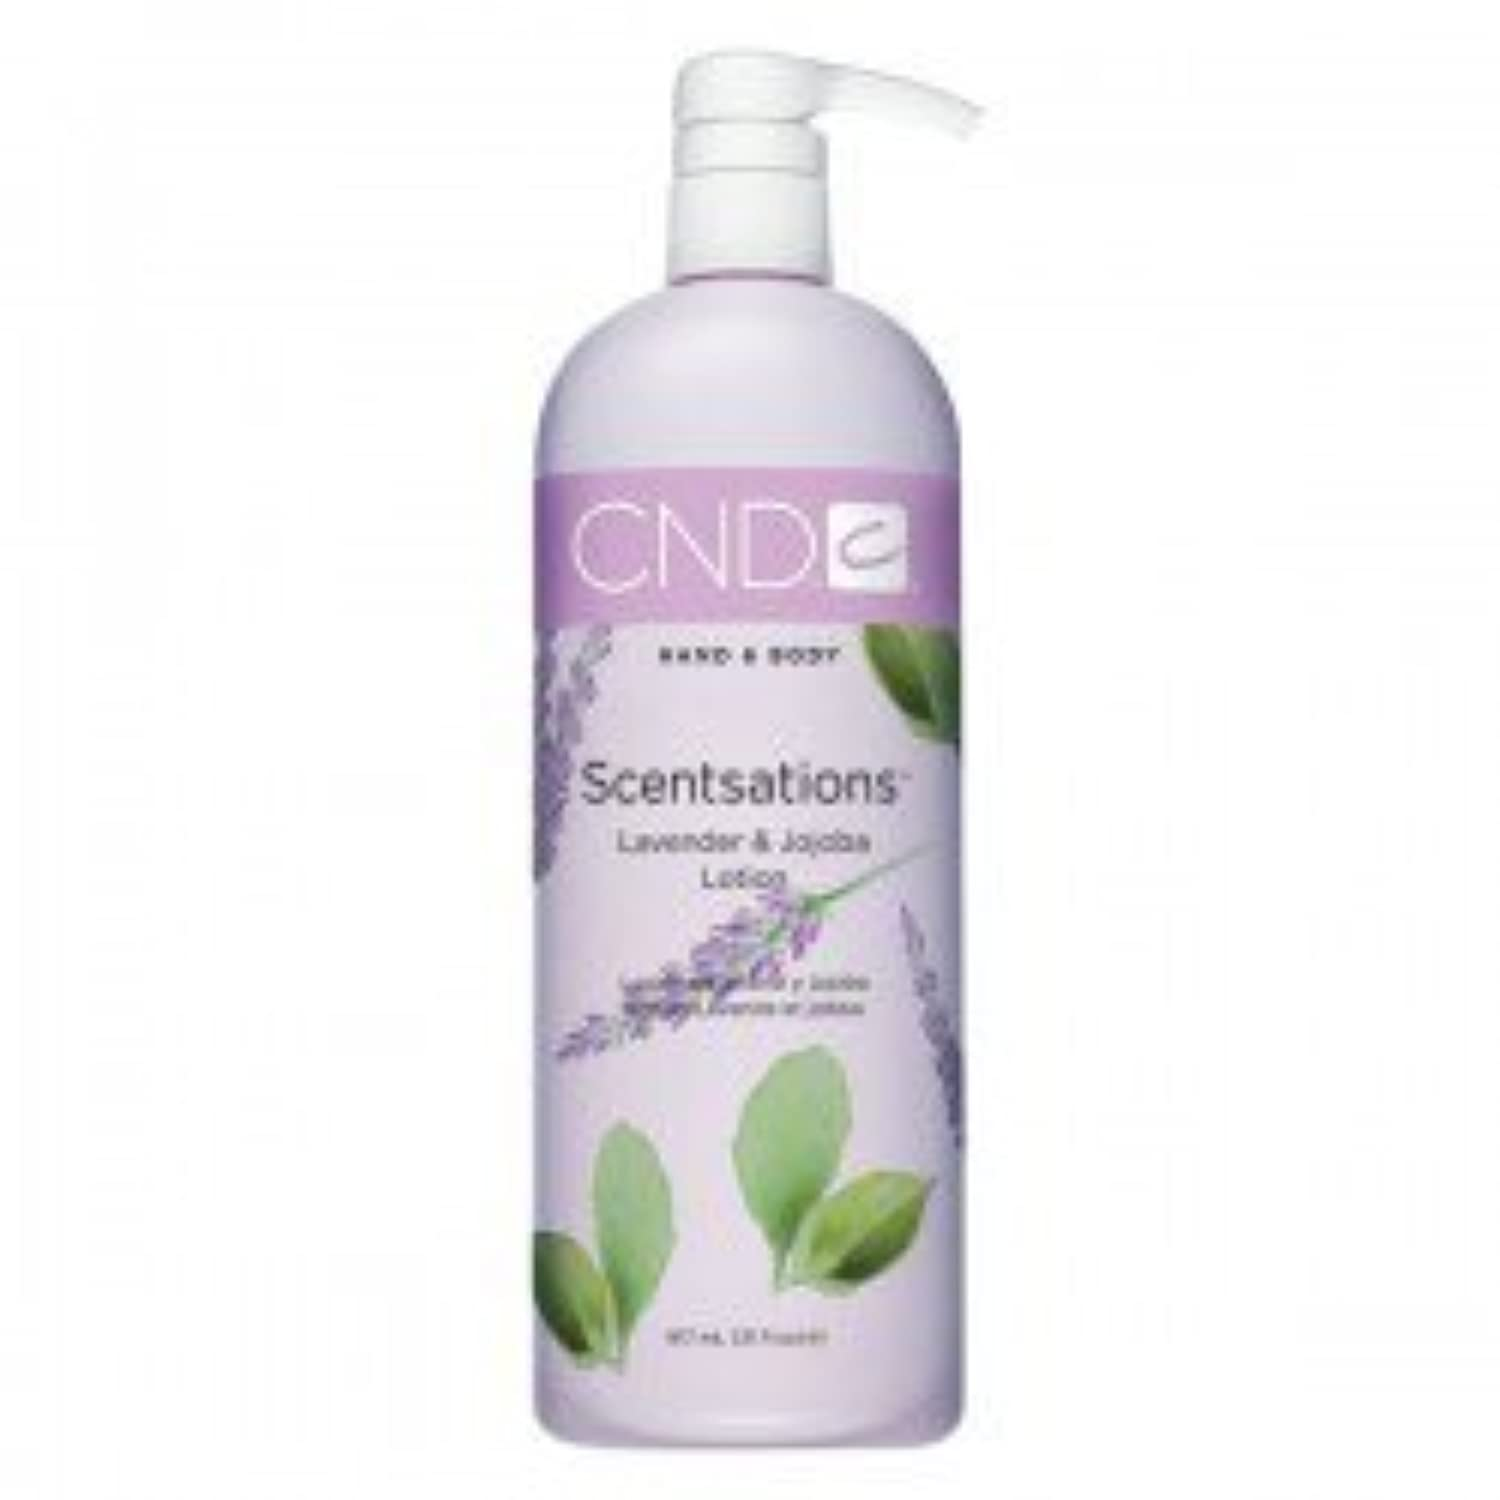 CND Scentsations Lavender & Jojoba Hand & Body Lotion - 33oz by Creative Nail [並行輸入品]